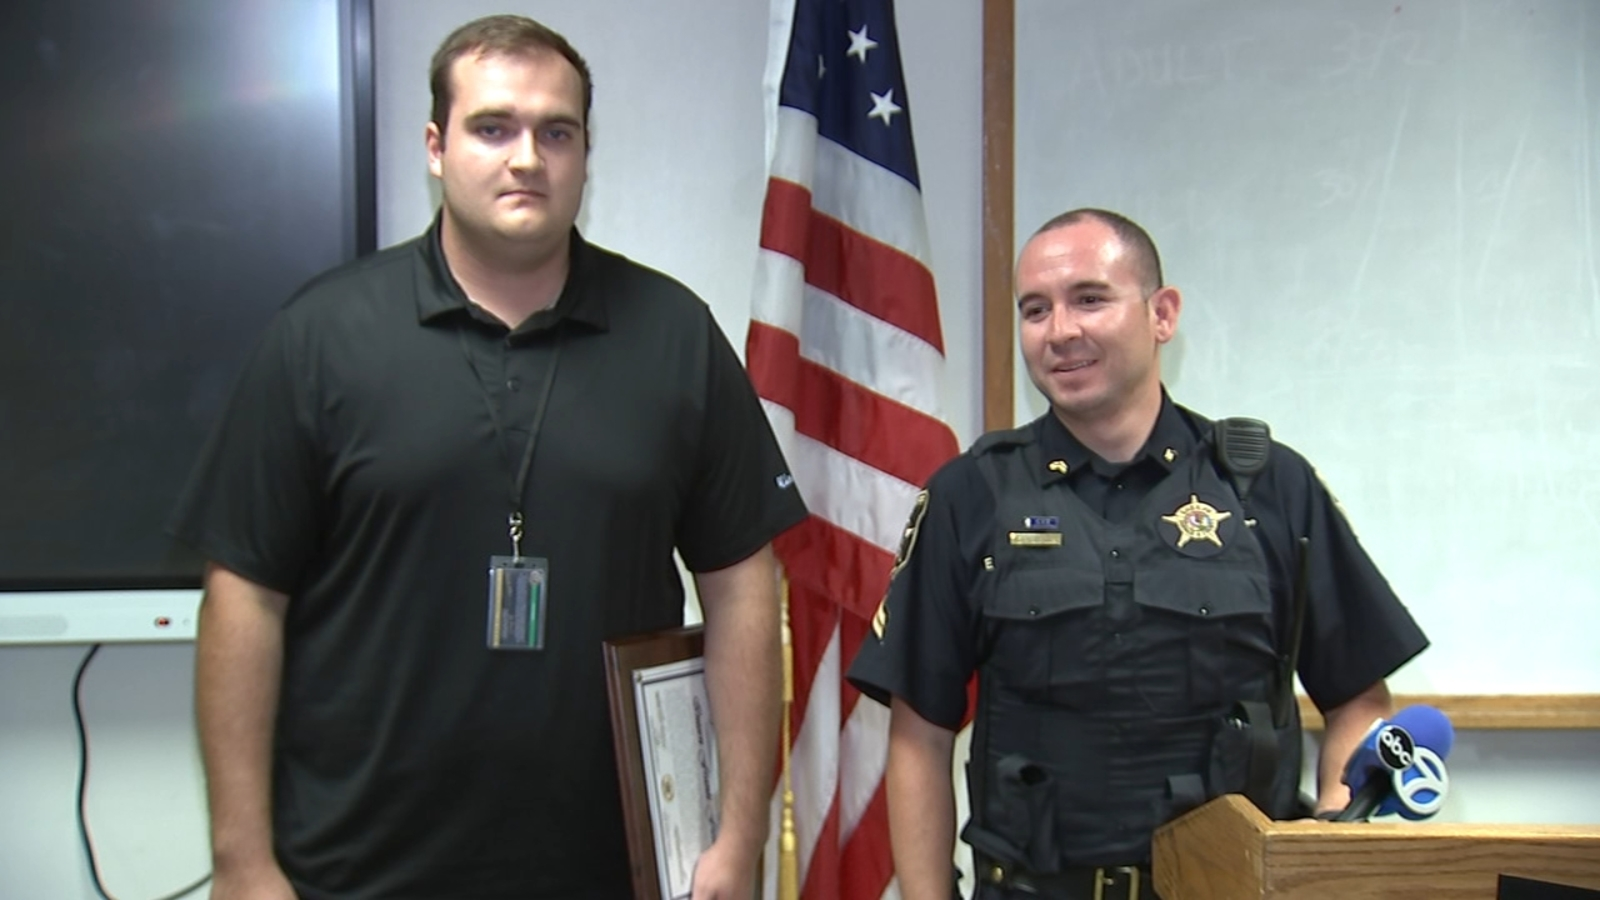 DuPage County Sheriff's Office intern honored for help in potentially dangerous situation